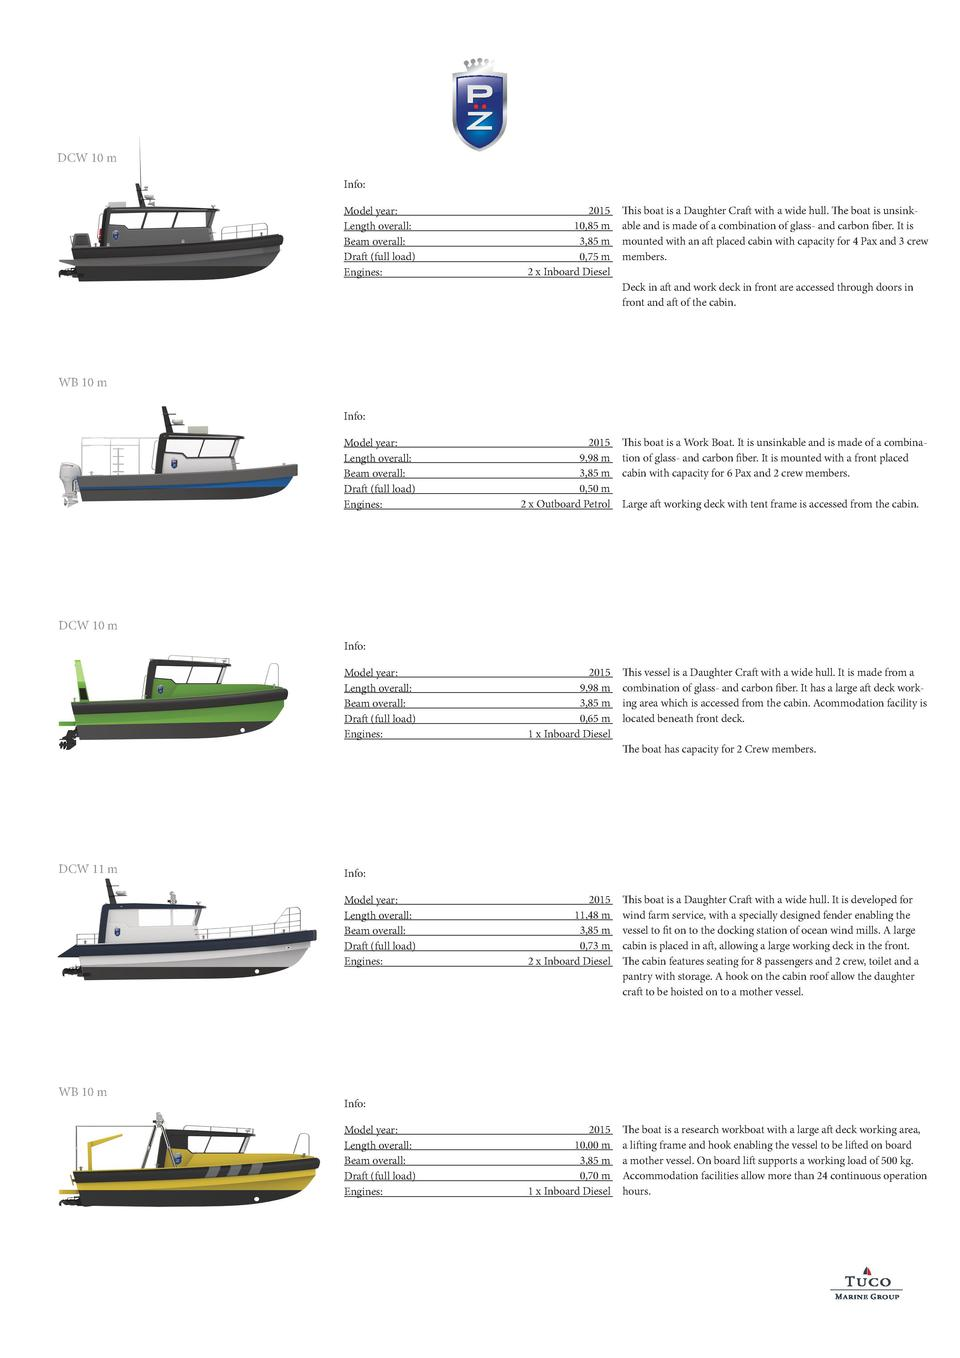 DCW 10 m Info  Model year  Length overall  Beam overall  Draft  full load  Engines   2015 10,85 m 3,85 m 0,75 m 2 x Inboar...